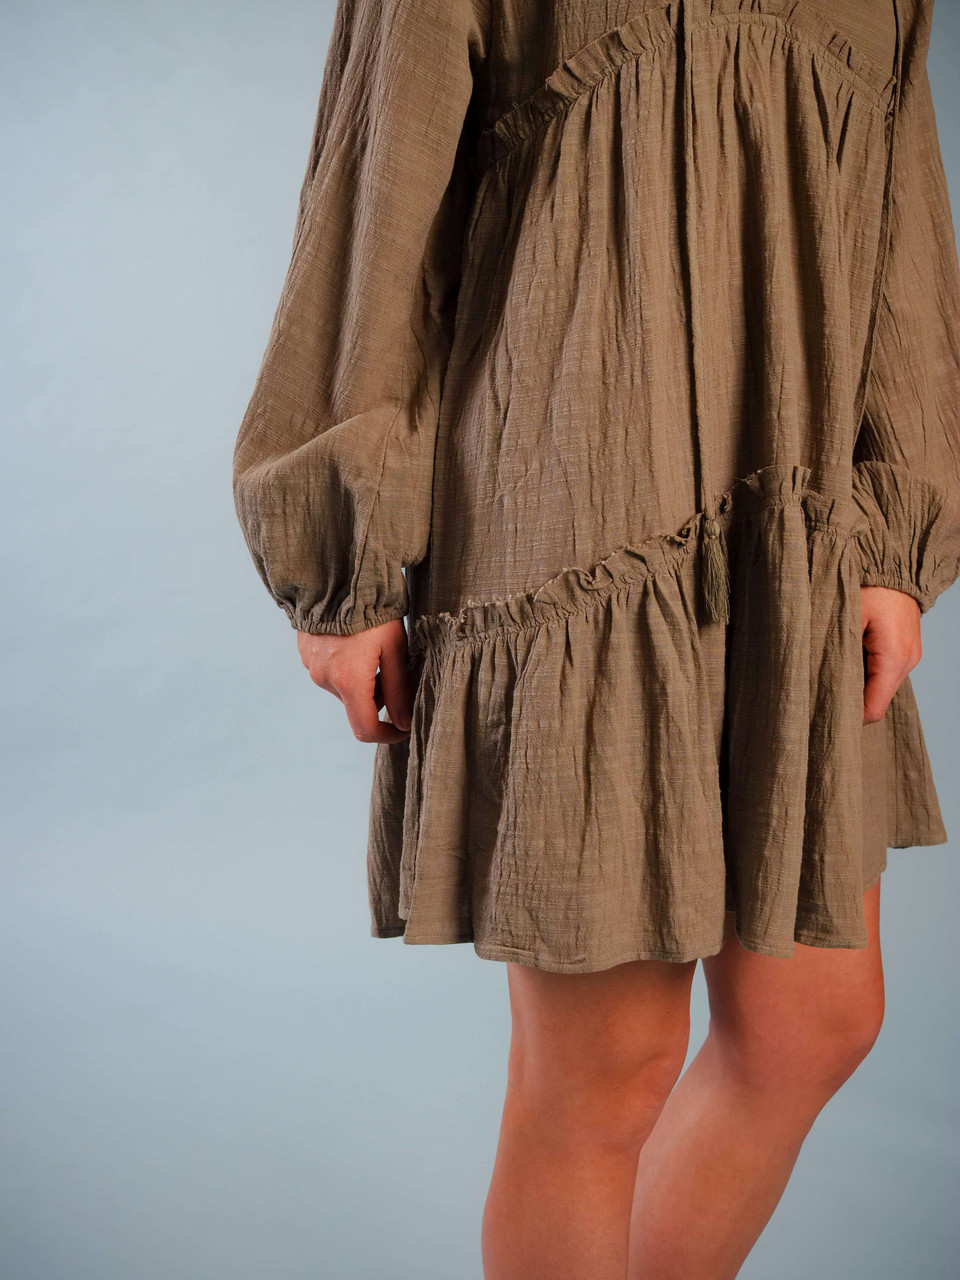 Olive green, Lightweight long-sleeve, Prairie-Style dress that could also be worn as a tunic, Model is wearing a small.